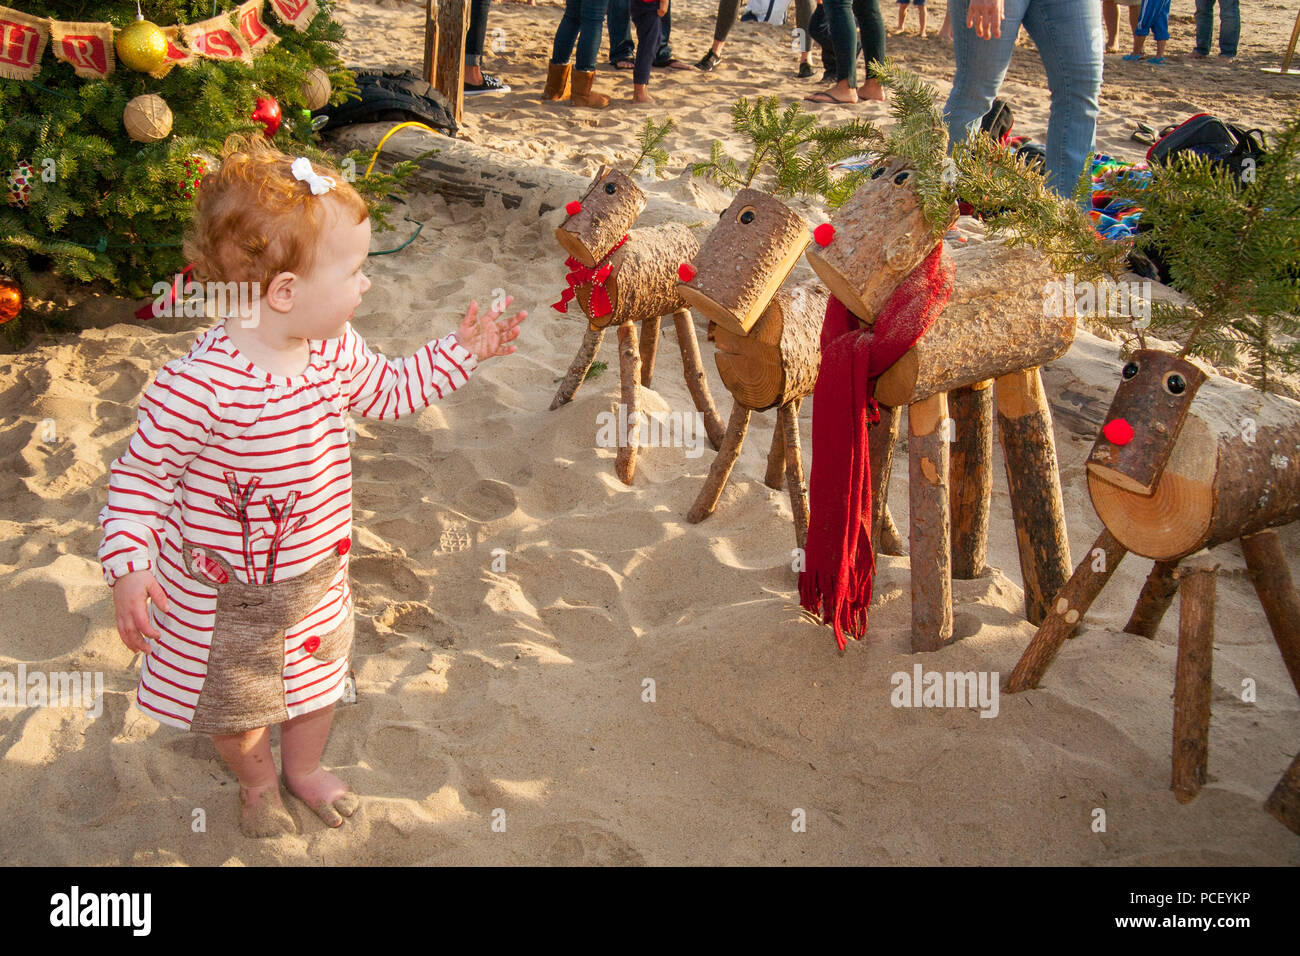 Wearing a Rudolph the Red-Nose Reindeer dress, a 16-month-old girl is bemused by a row of wooden model Rudolphs in Laguna Beach, CA, one them decked out in a maroon scarf..  (Photo by Spencer Grant) - Stock Image